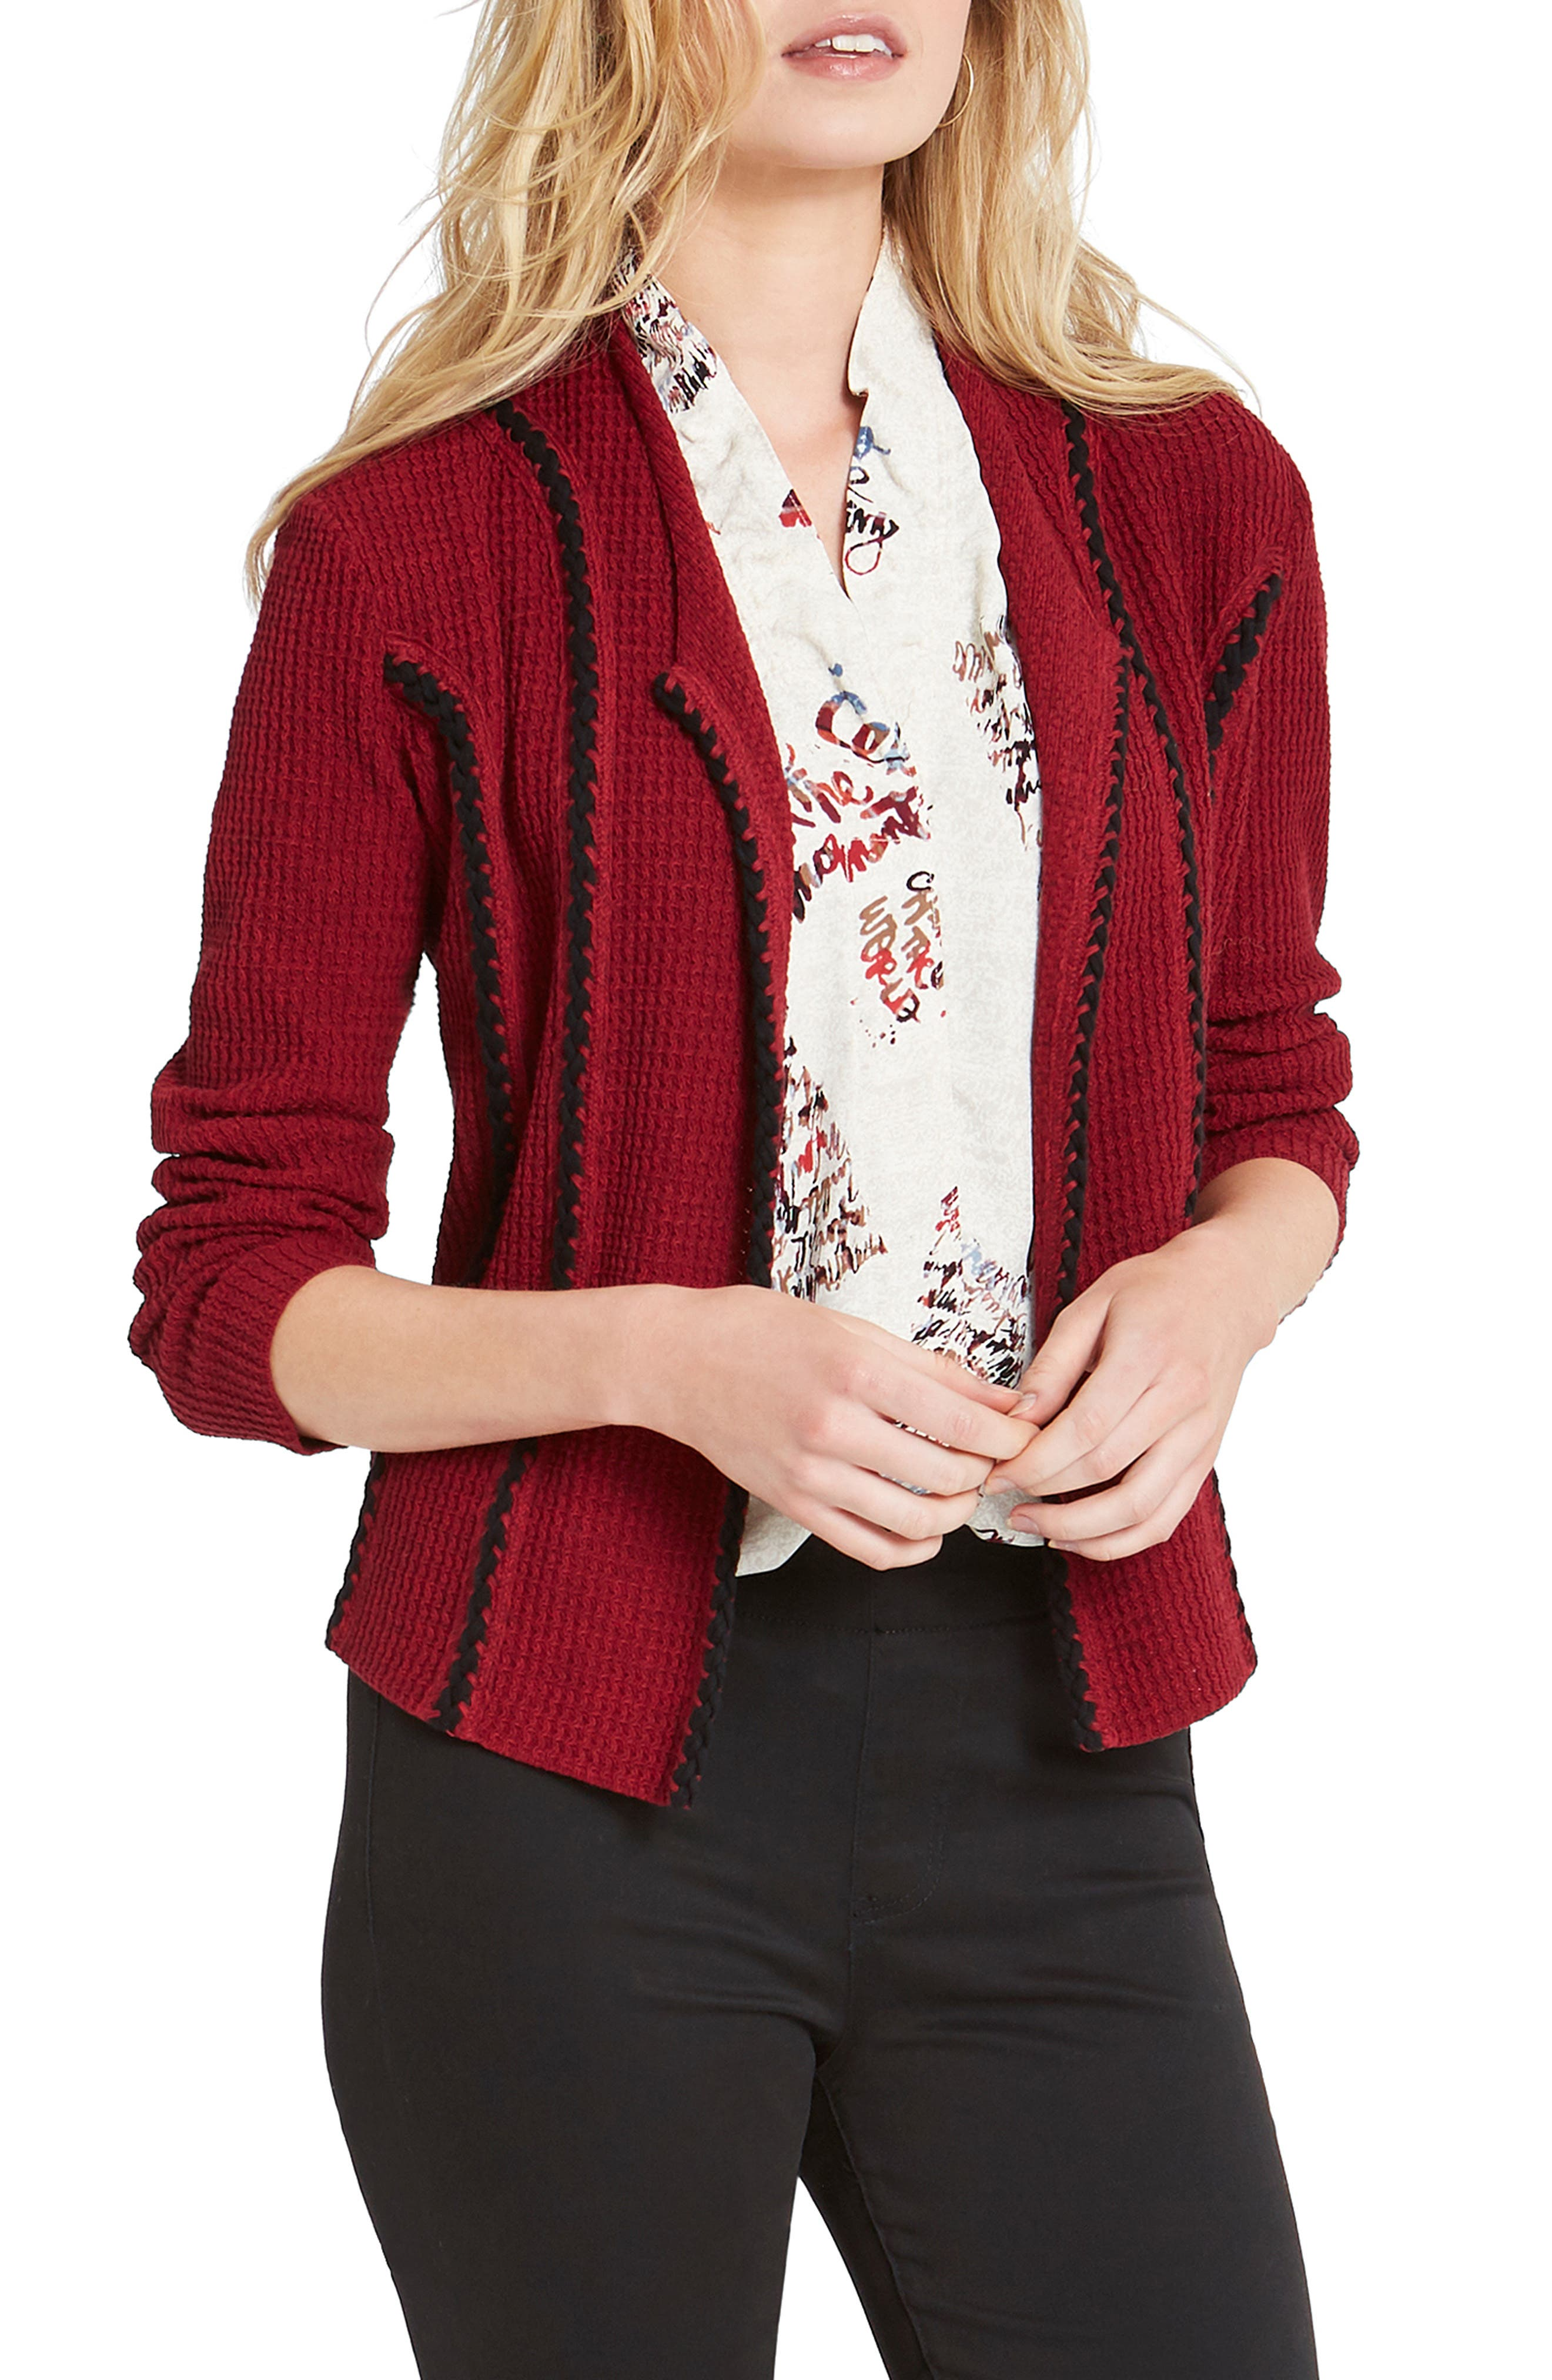 A cozy cotton-blend knit makes this smart fitted jacket a comfortable yet polished fall layer. Style Name: Nic + Zoe Cafe Jacket. Style Number: 6098671. Available in stores.